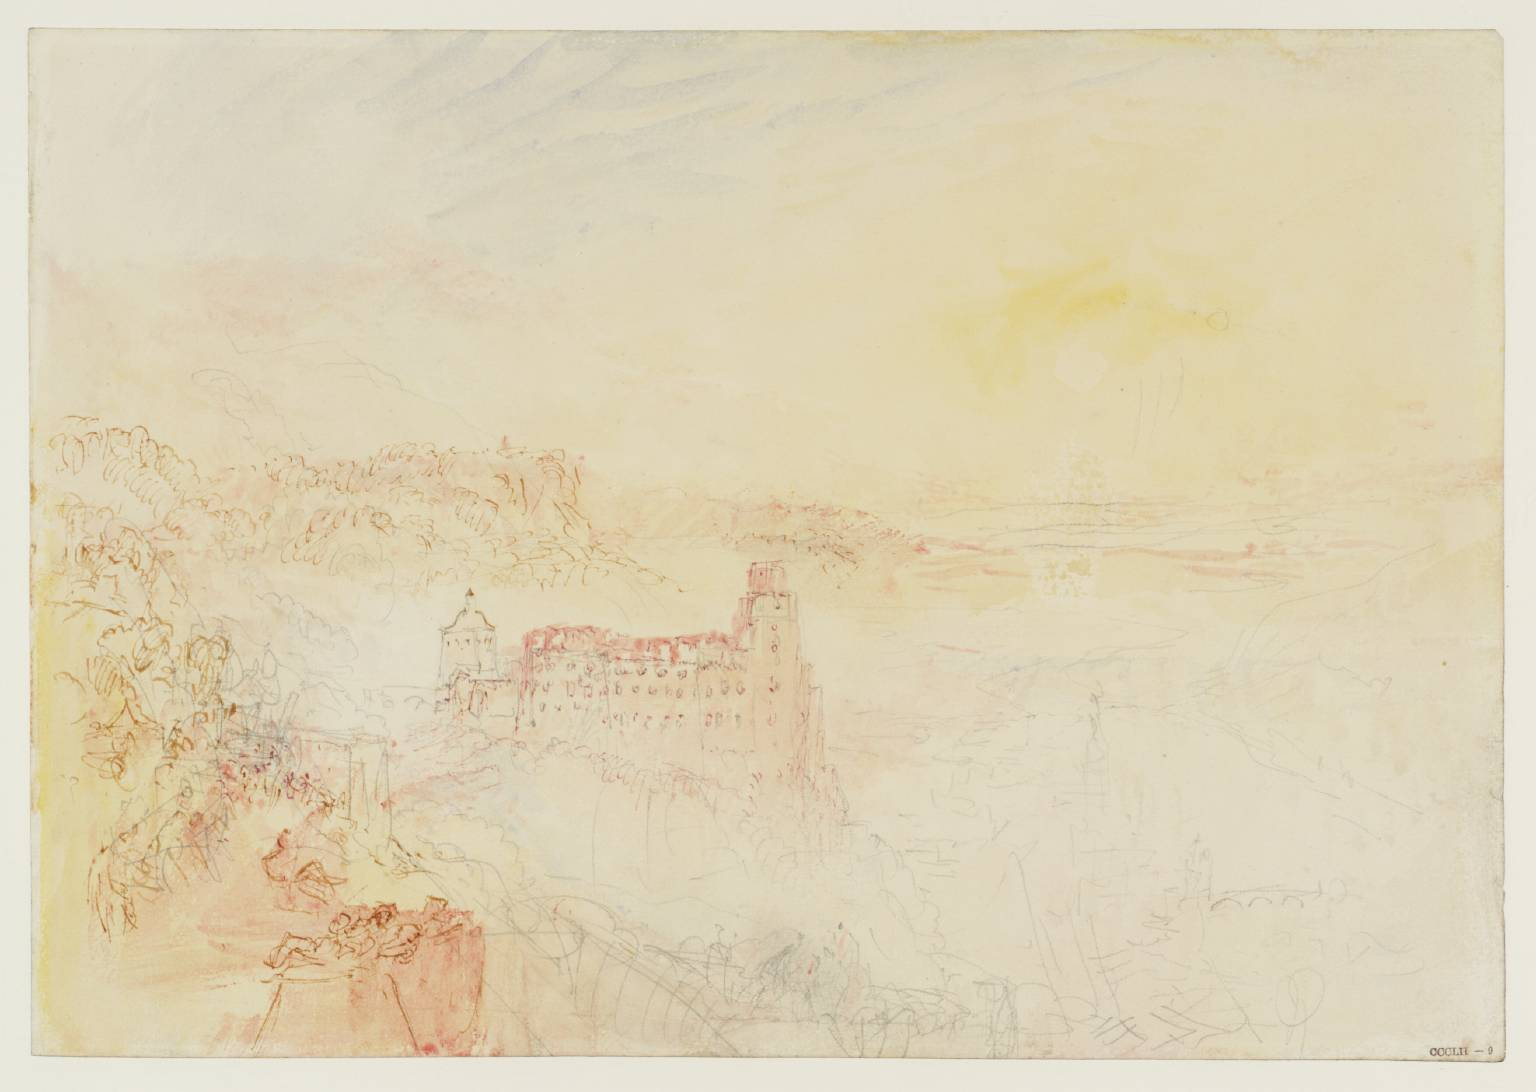 J M W Turner Heidelberg Castle from the East, 1844 Graphite and watercolour on paper, 229 x 329 mm From the Heidelberg sketchbook, Tate, London, D35229; Turner Bequest CCCLII 9 as 'Heidelberg from the East' Having already sketched in pencil the sunset from the garden terrace, here he sets it down in colour. His viewpoint is actually some way above the terrace itself on the road. It seems to have been a popular vantage point to judge from the indications of figures in this sketch. Sadly, once again there is nothing now to be seen from here but trees. Photo courtesy of Tate To view this image in Tate's own catalogue of the Turner bequest, click on the following link, and use your browser's 'back' button to return to this page. http://www.tate.org.uk/art/artworks/turner-heidelberg-from-the-east-d35229